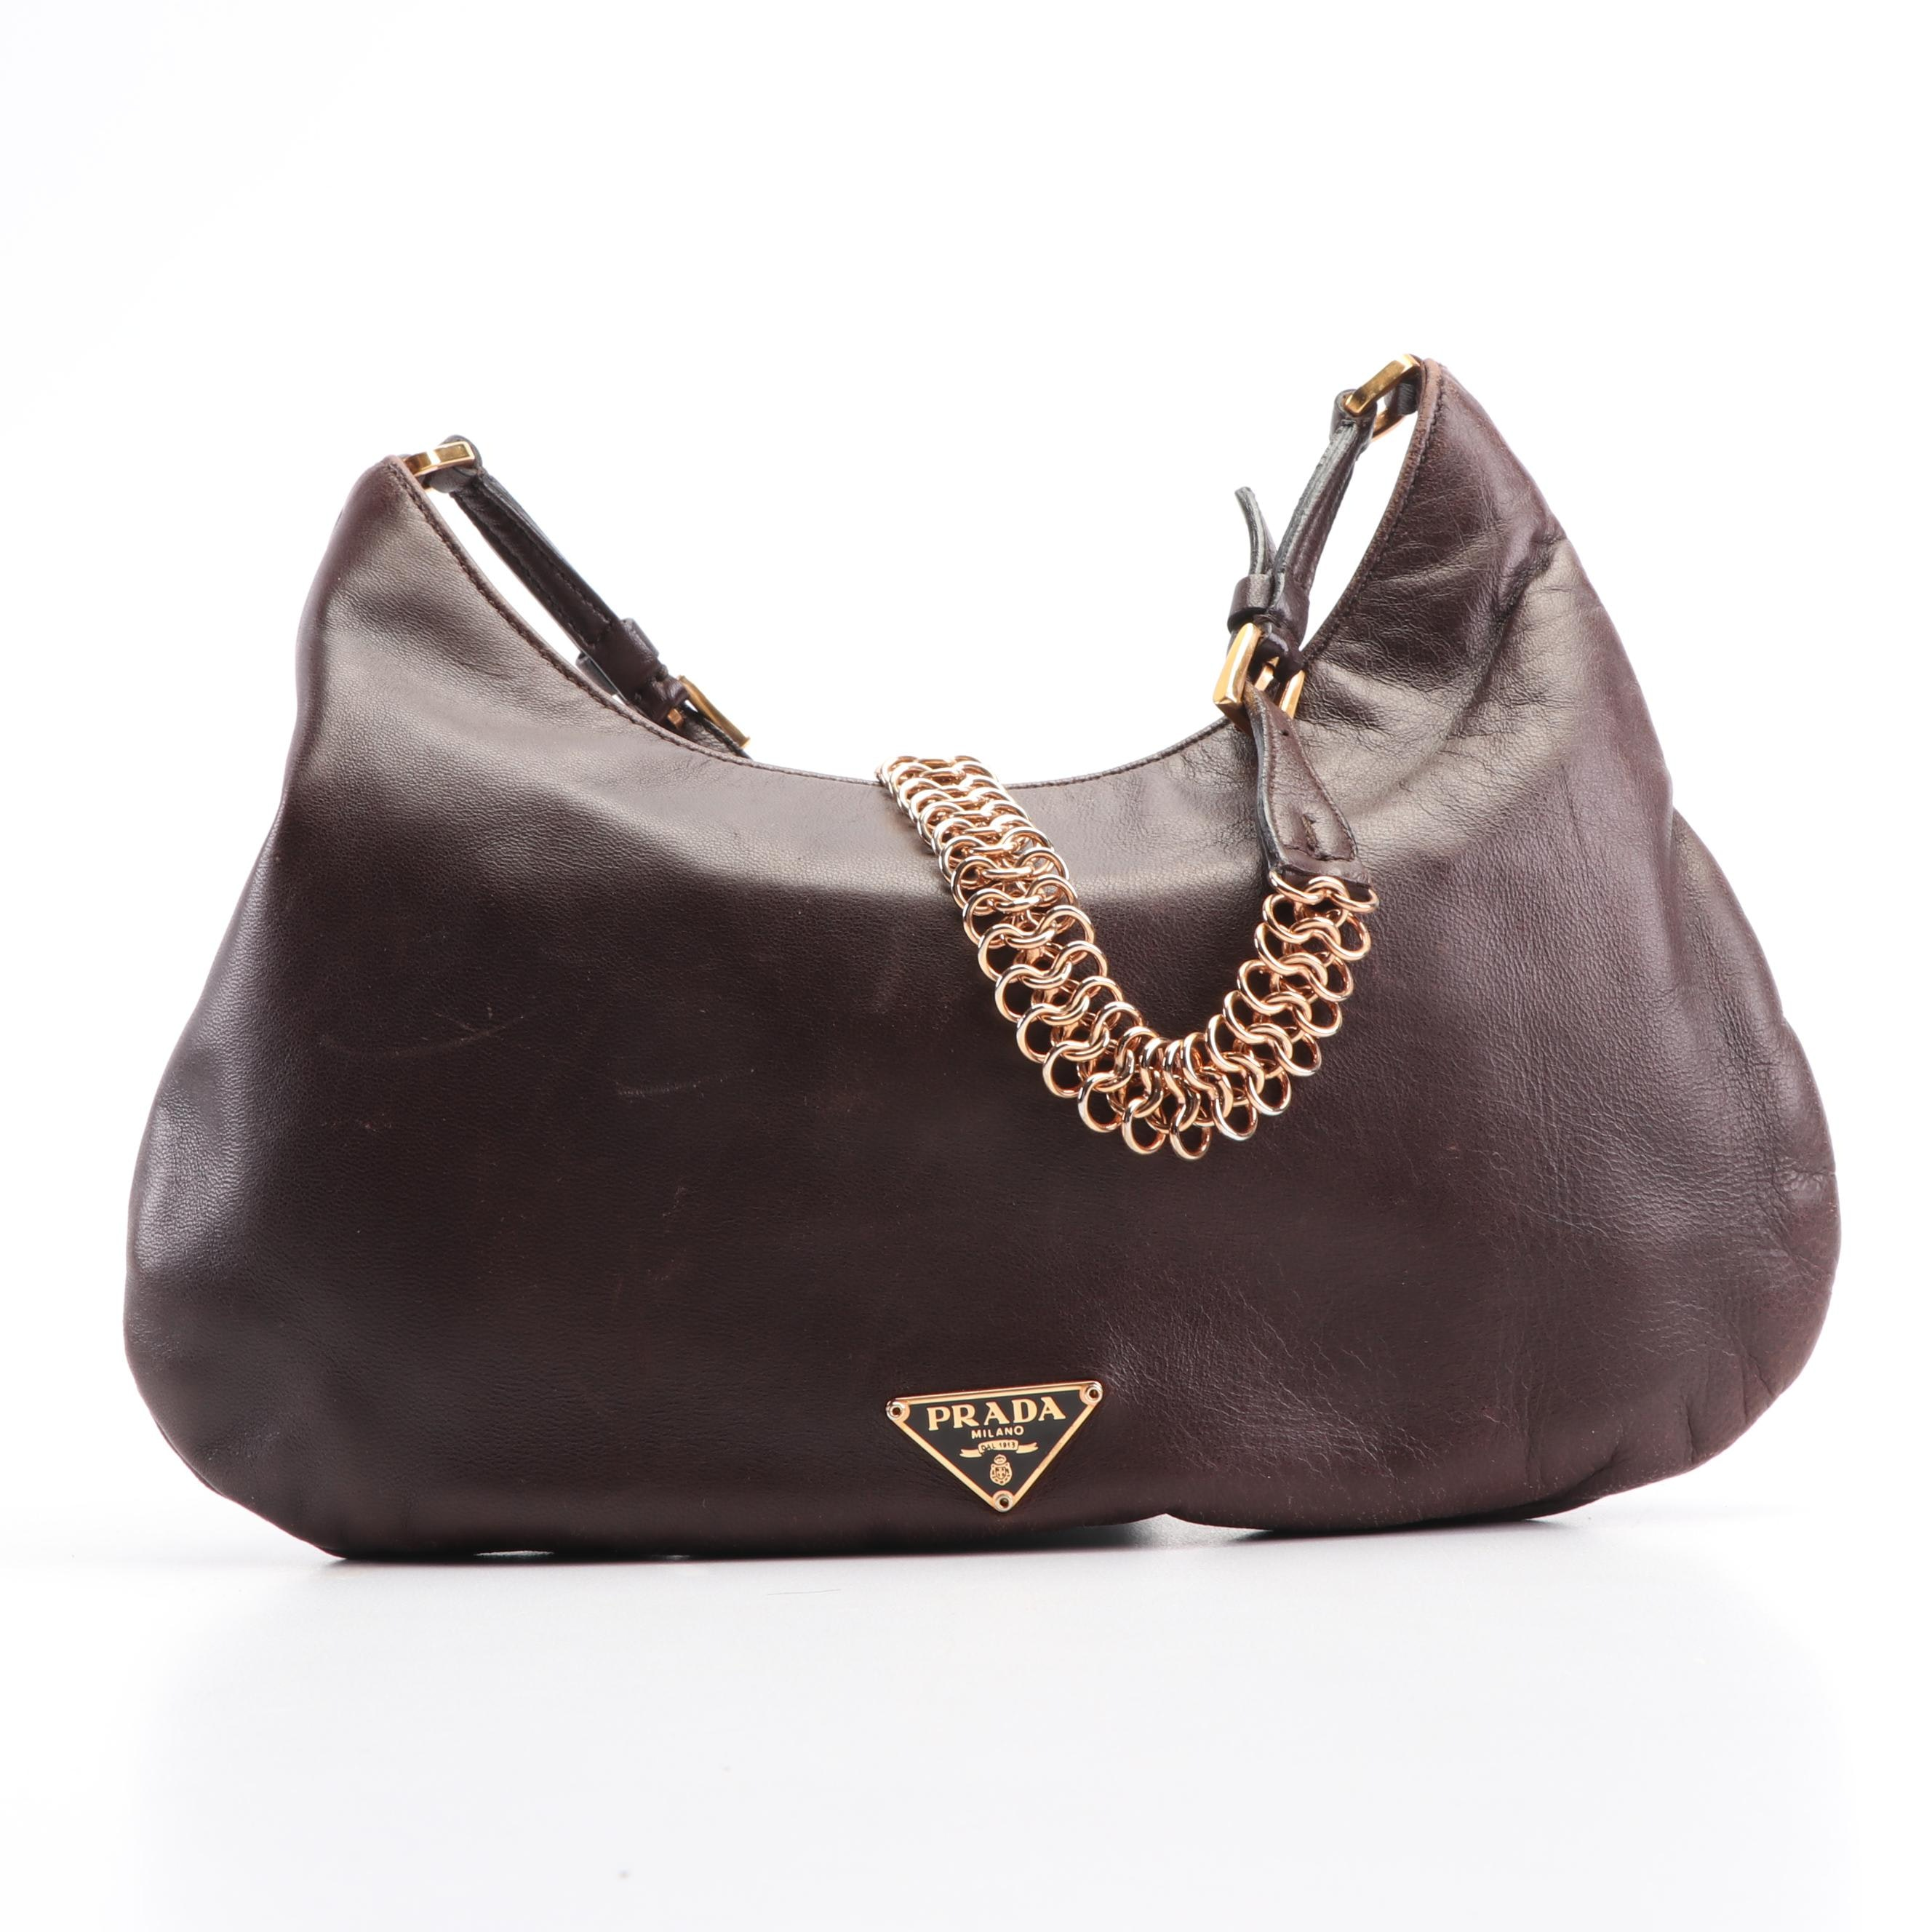 Prada Brown Leather Shoulder Bag, Made in Italy